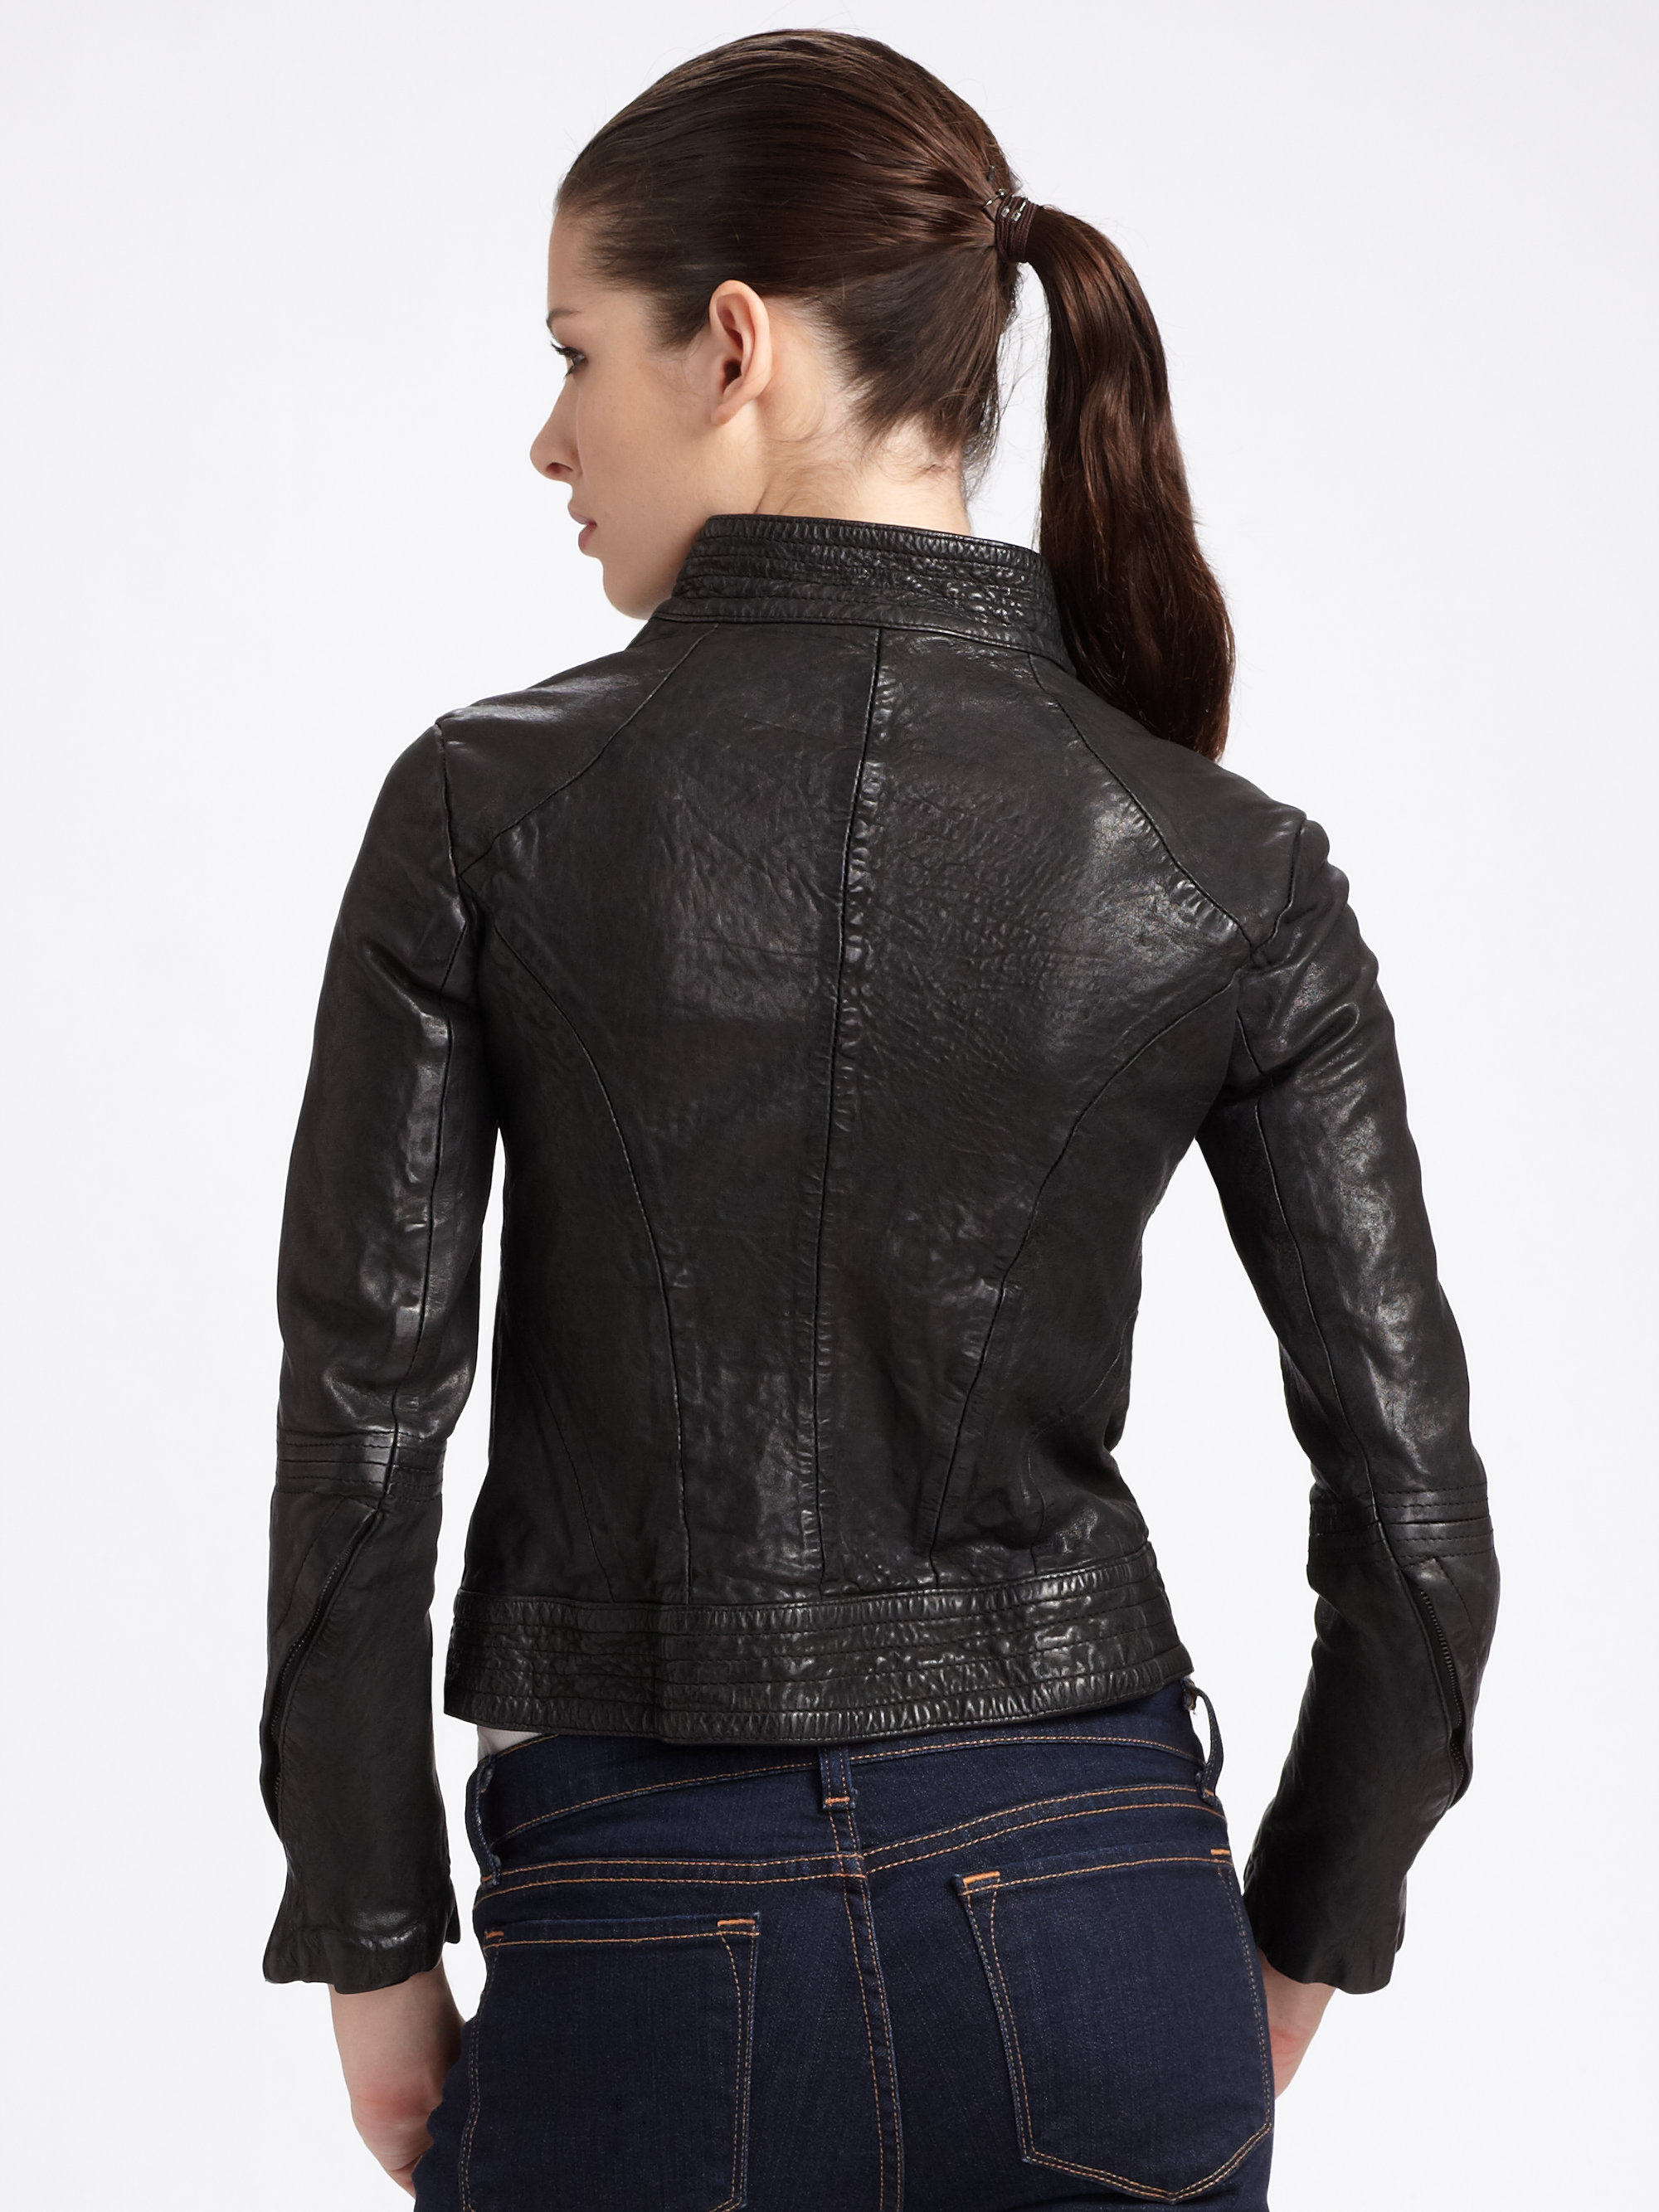 Shop womens cropped jacket at Neiman Marcus, where you will find free shipping on the latest in fashion from top designers. Skip To Main Content. SAVE 25% ON REGULAR PRICES! CHIC WEEK. JEWELRY SALE! SAVE 20% WITH CODE JEWEL HOME SALE: SAVE 20%. Available in Black, White.